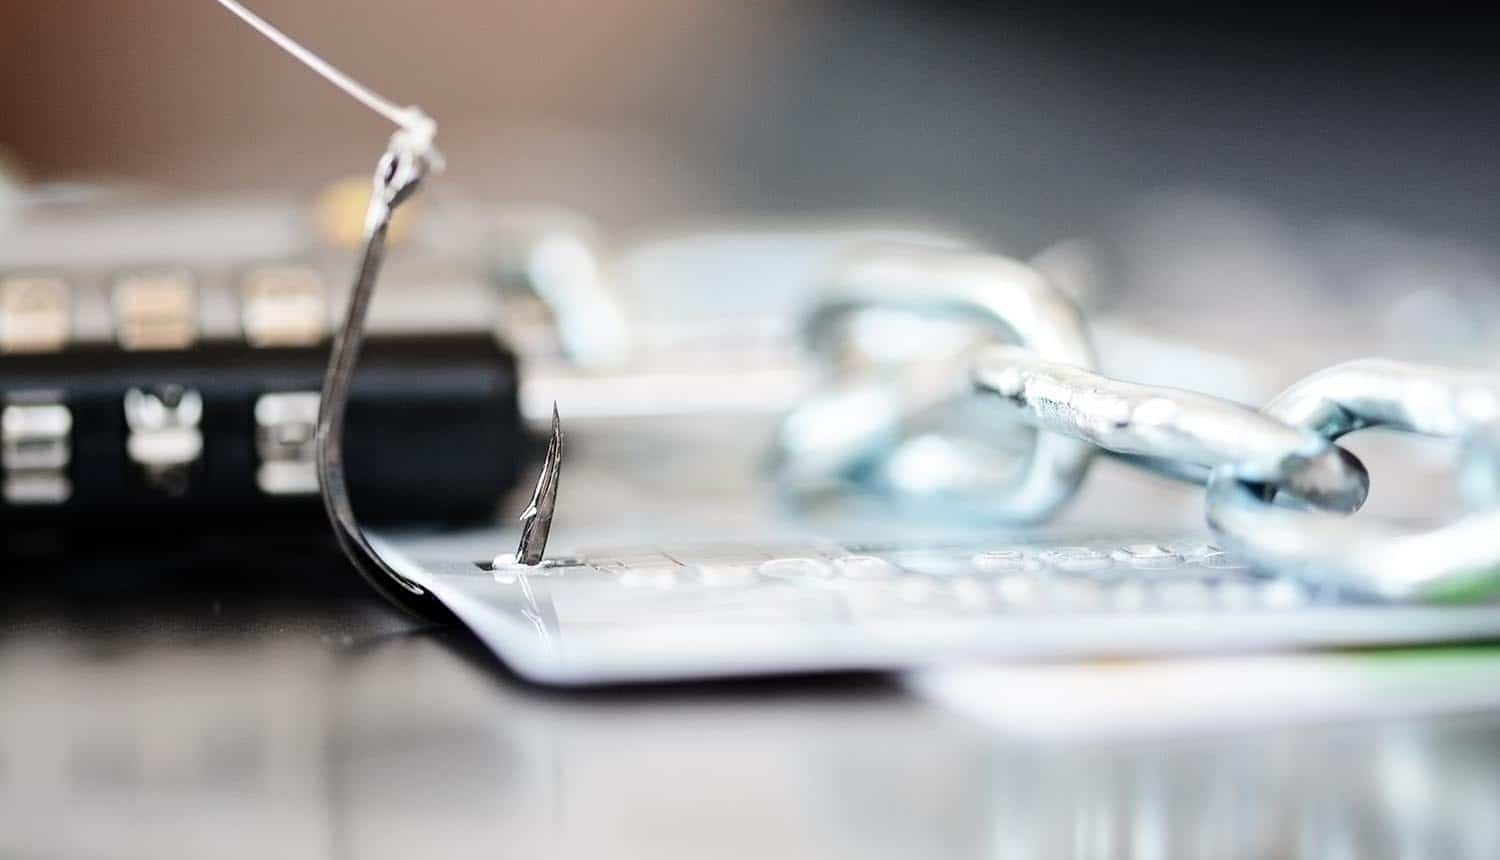 Padlock and chain near credit cards in fishing hook showing phishing attack